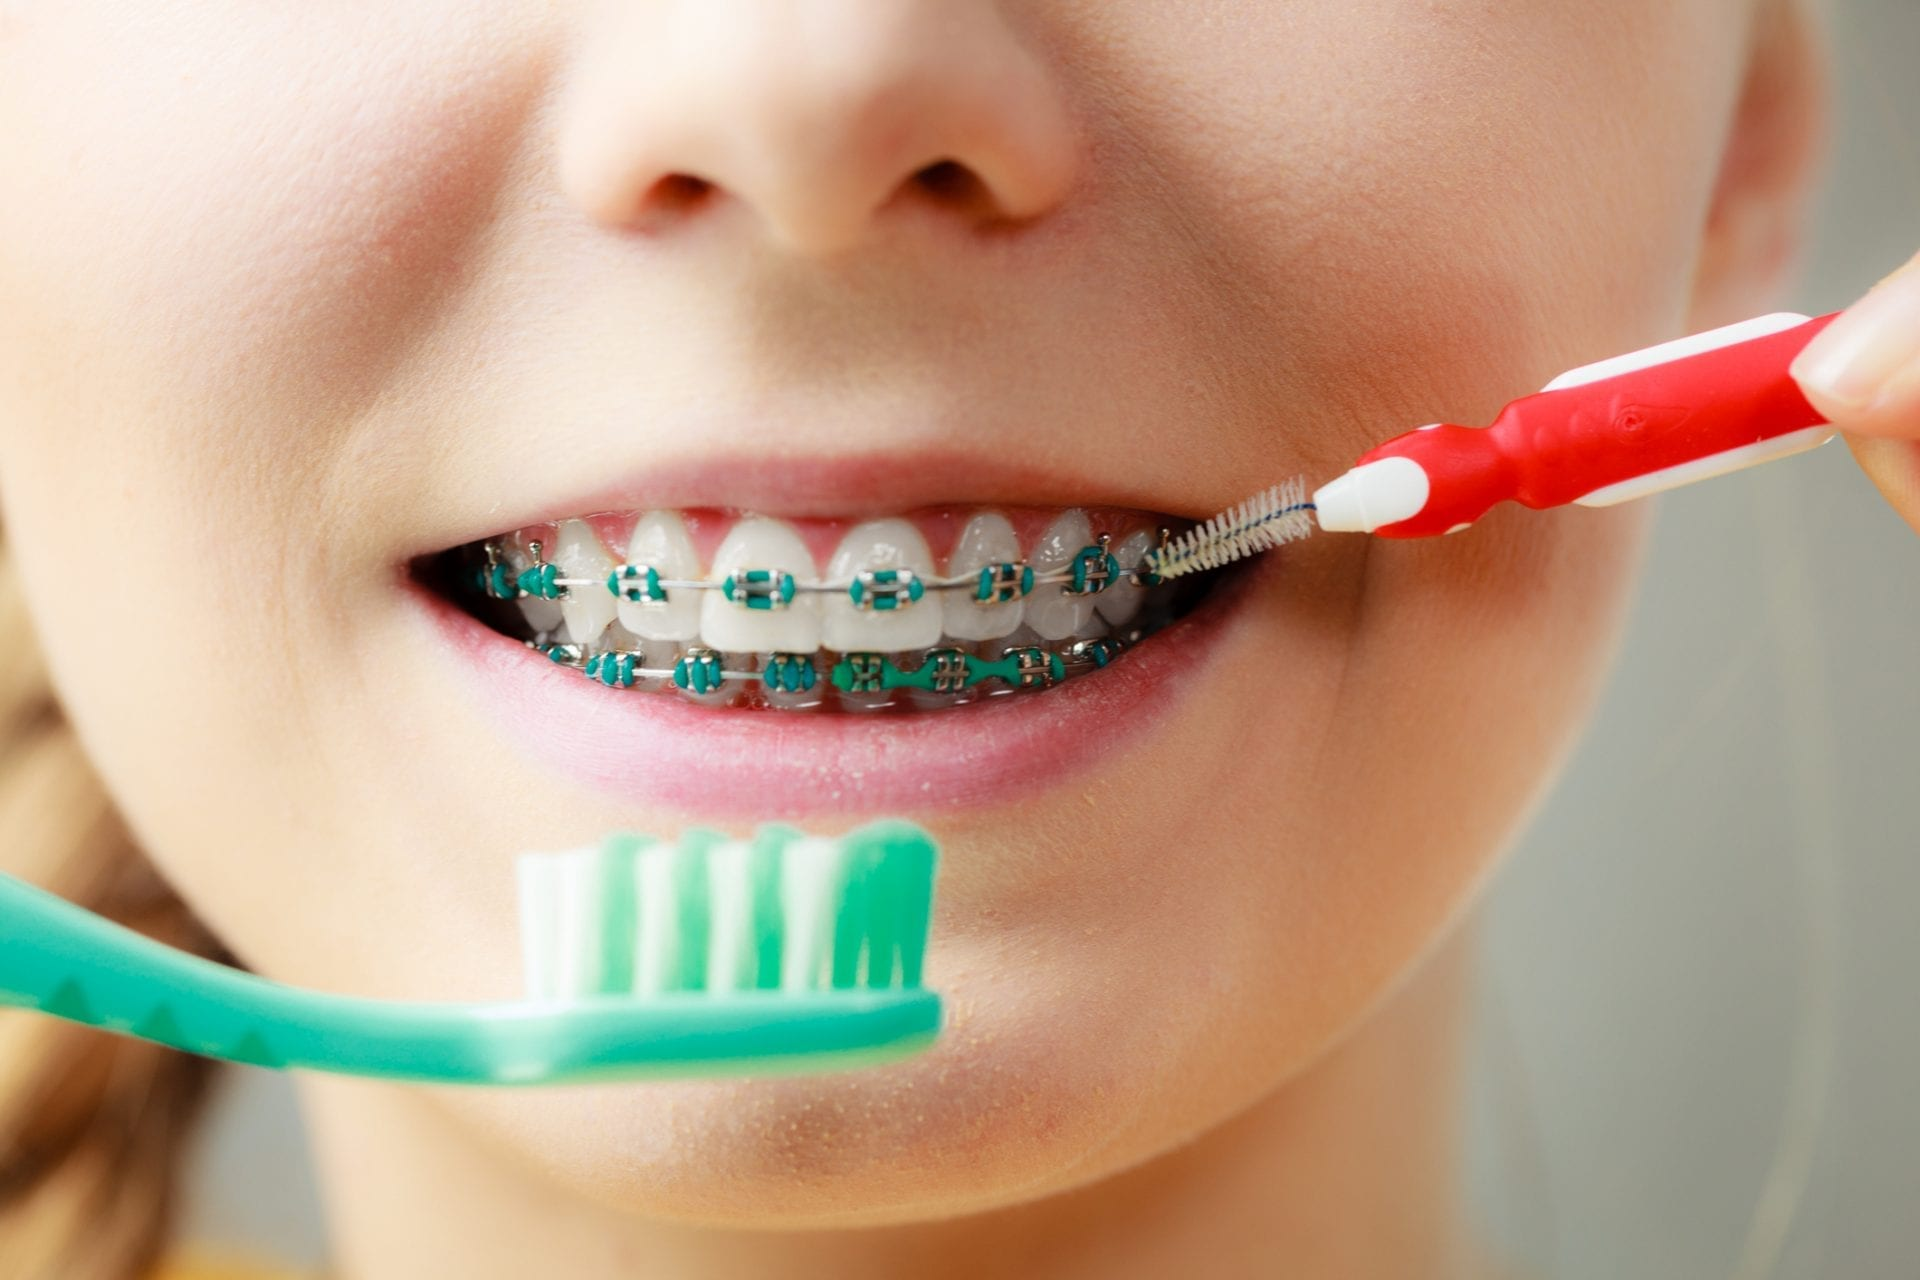 Brushing your teeth with braces